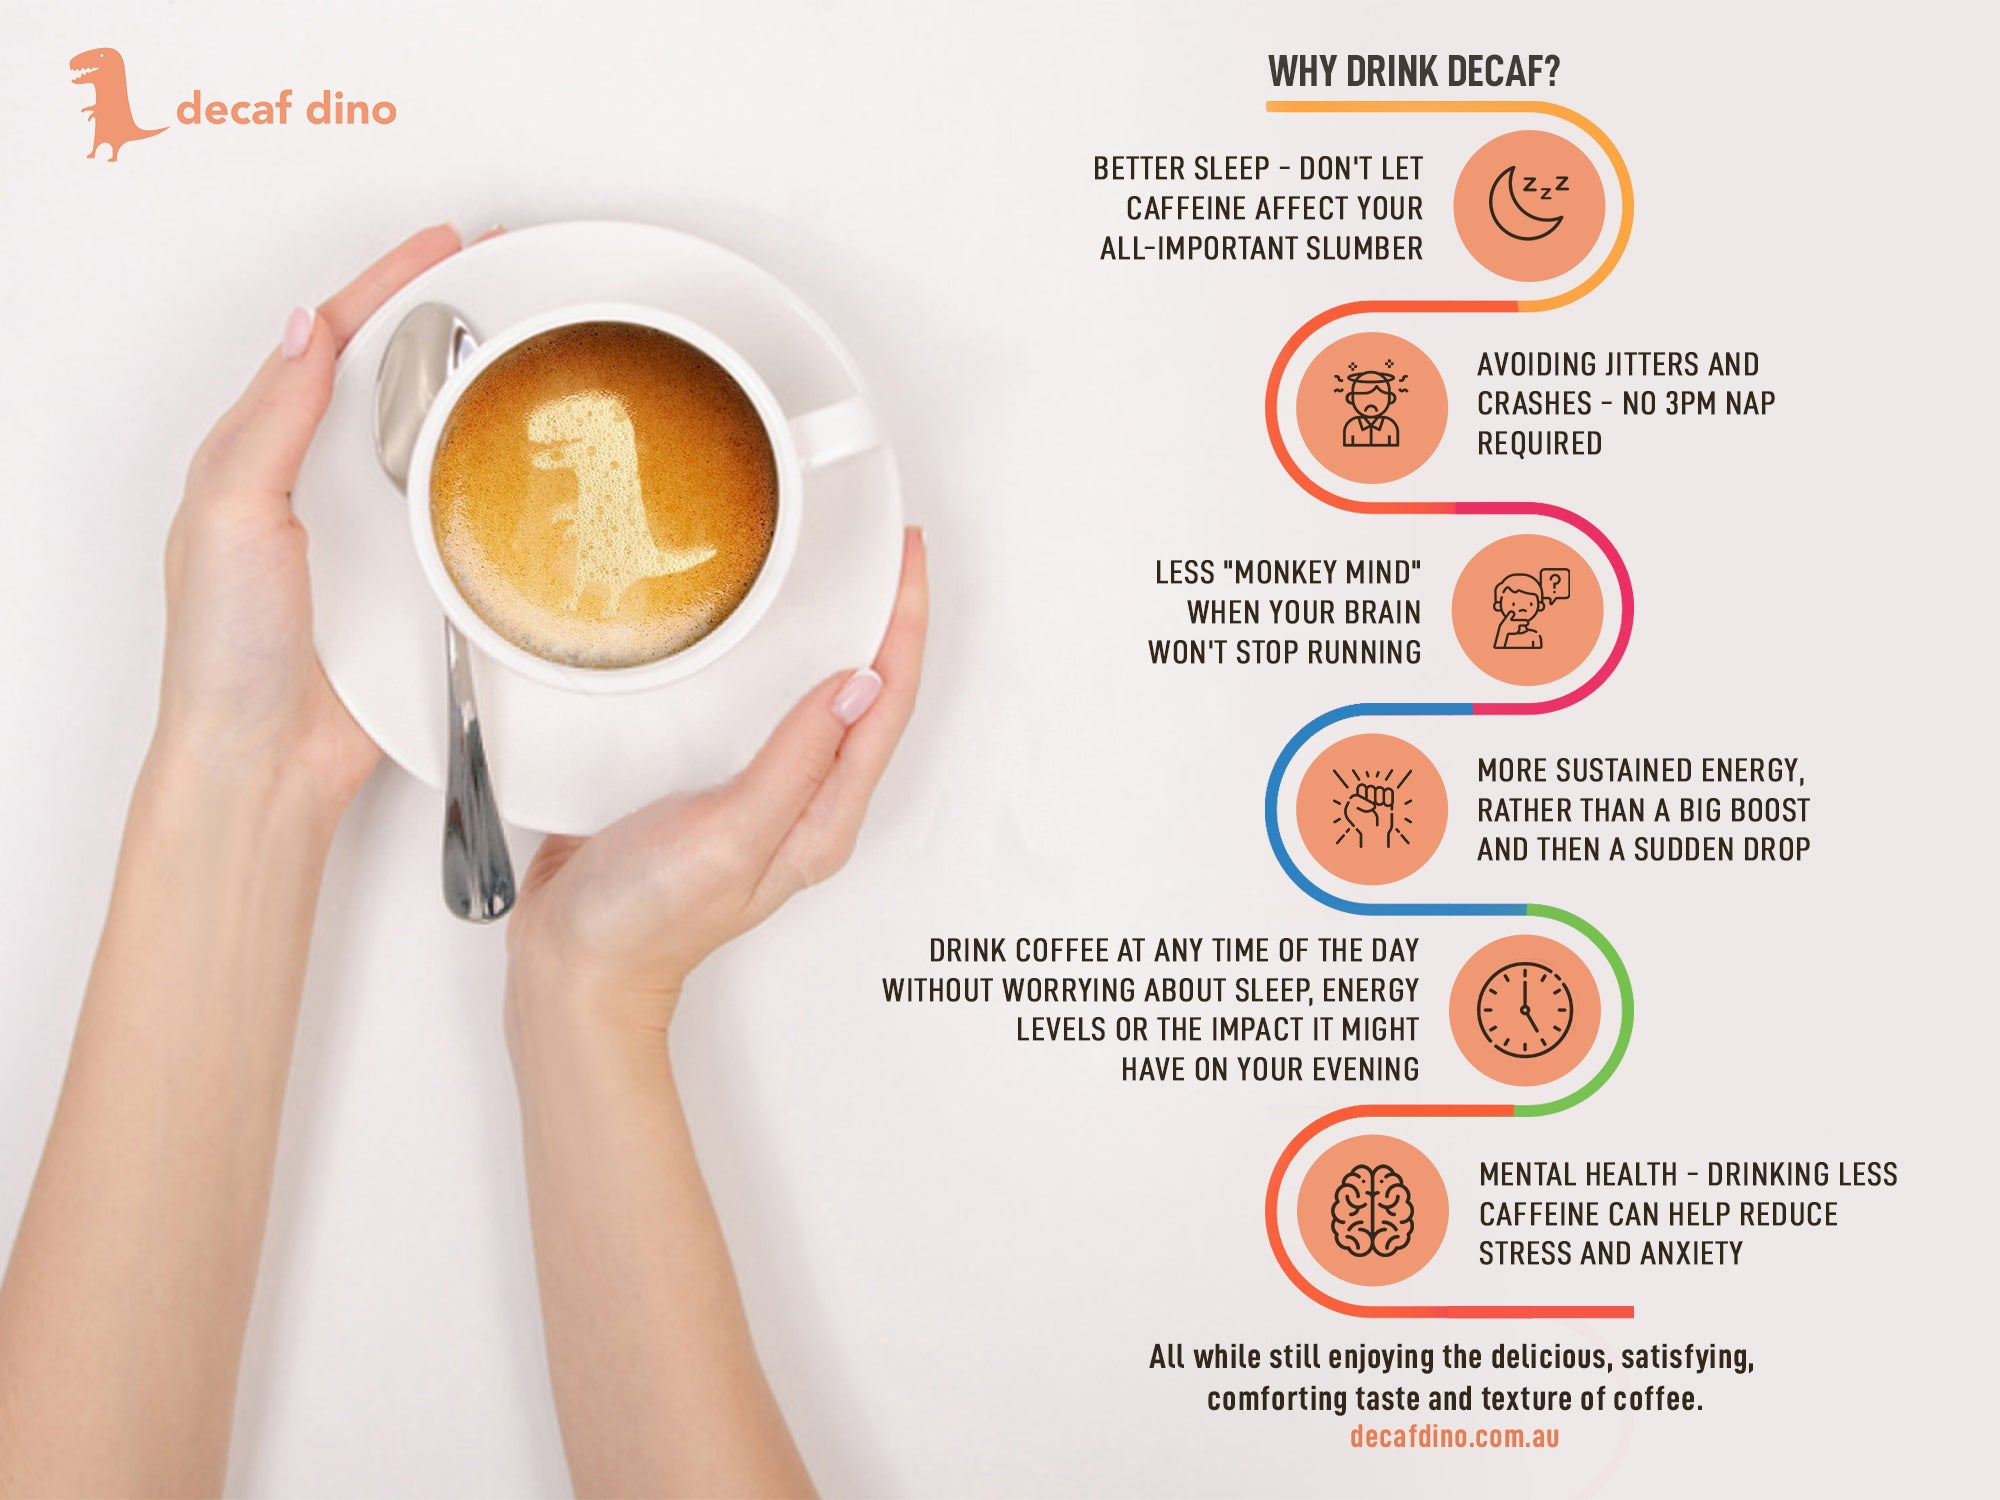 Why drink decaf? Benefits of drinking decaf